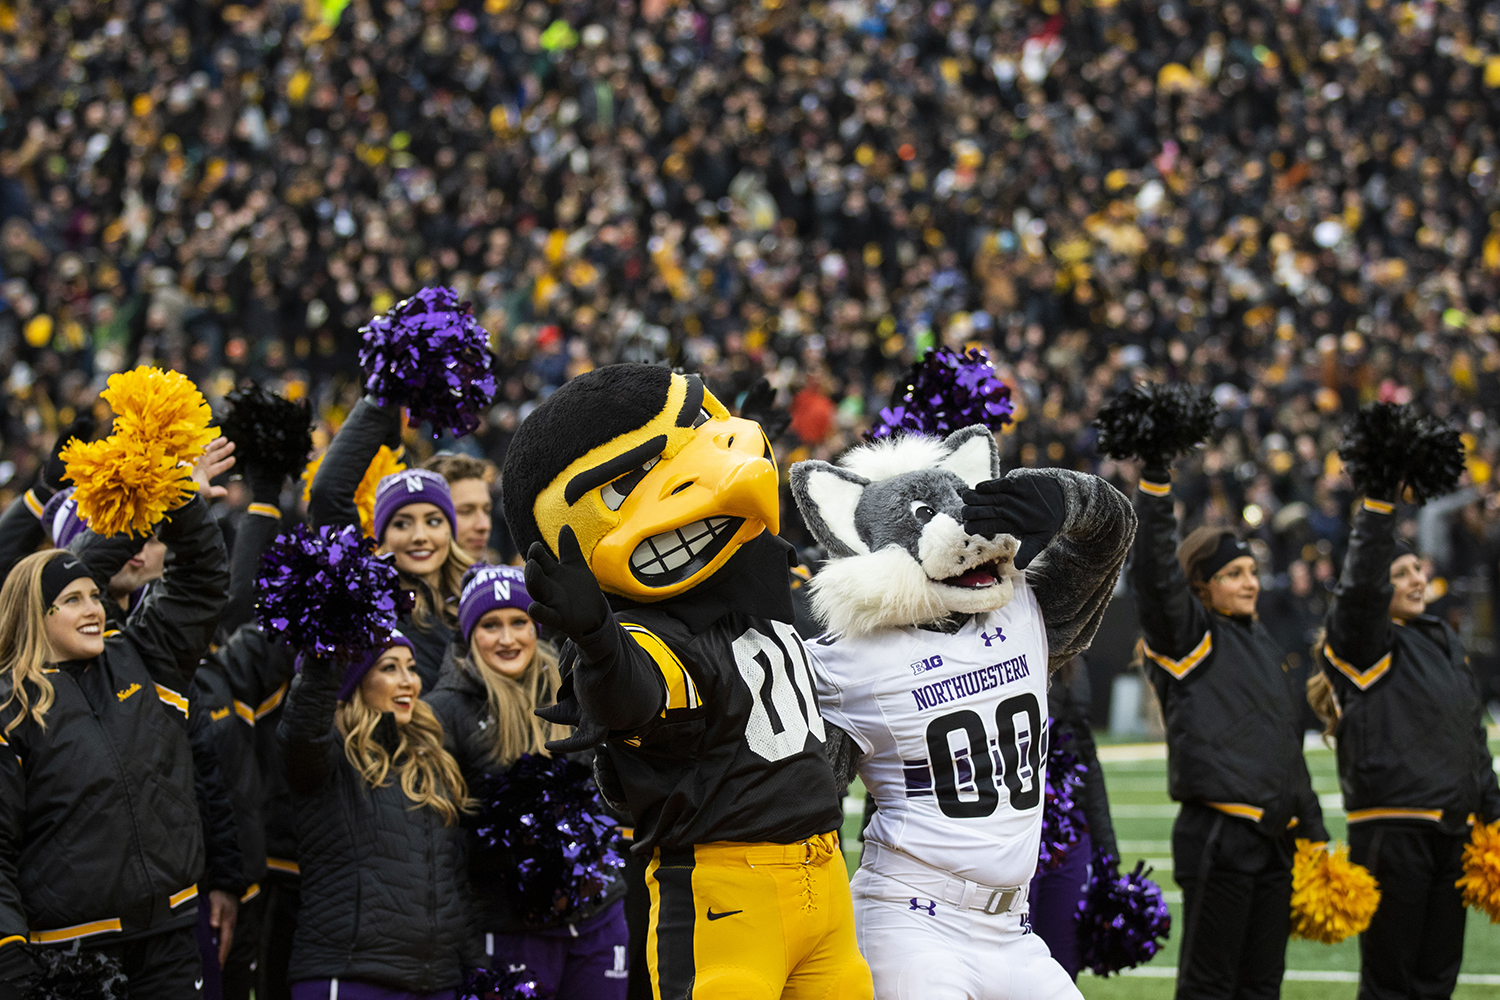 Herky+the+Hawk+and+Willy+the+Wildcat+wave+to+the+Stead+Family+Children%27s+Hospital+during+the+Iowa%2FNorthwestern+football+game+at+Kinnick+Stadium+on+Saturday%2C+November+10%2C+2018.+The+Wildcats+defeated+the+Hawkeyes%2C+14-10.+%28Lily+Smith%2FThe+Daily+Iowan%29